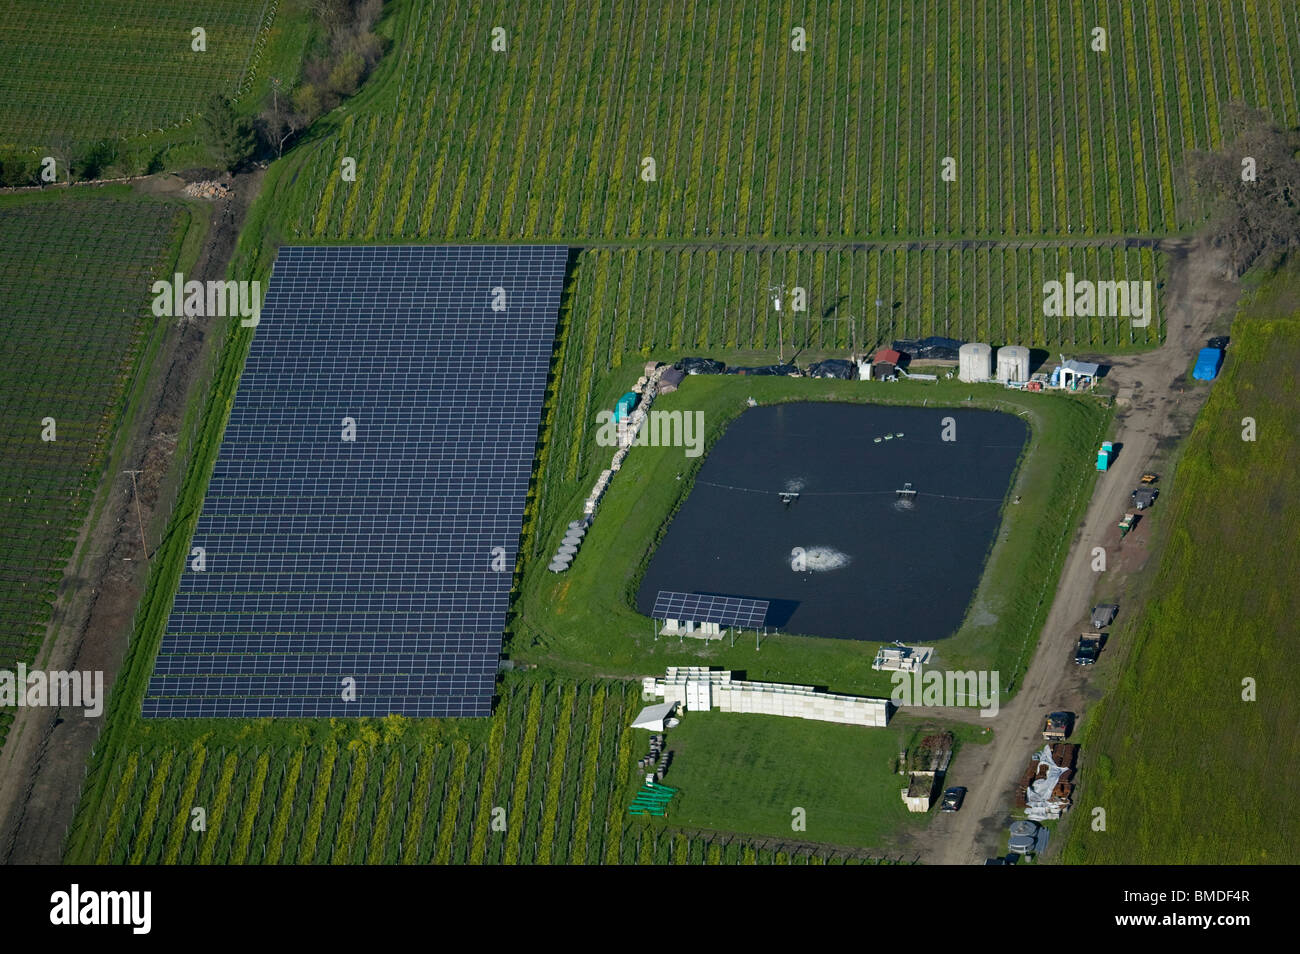 aerial view above solar panels irrigation pond Napa Valley California vineyard - Stock Image